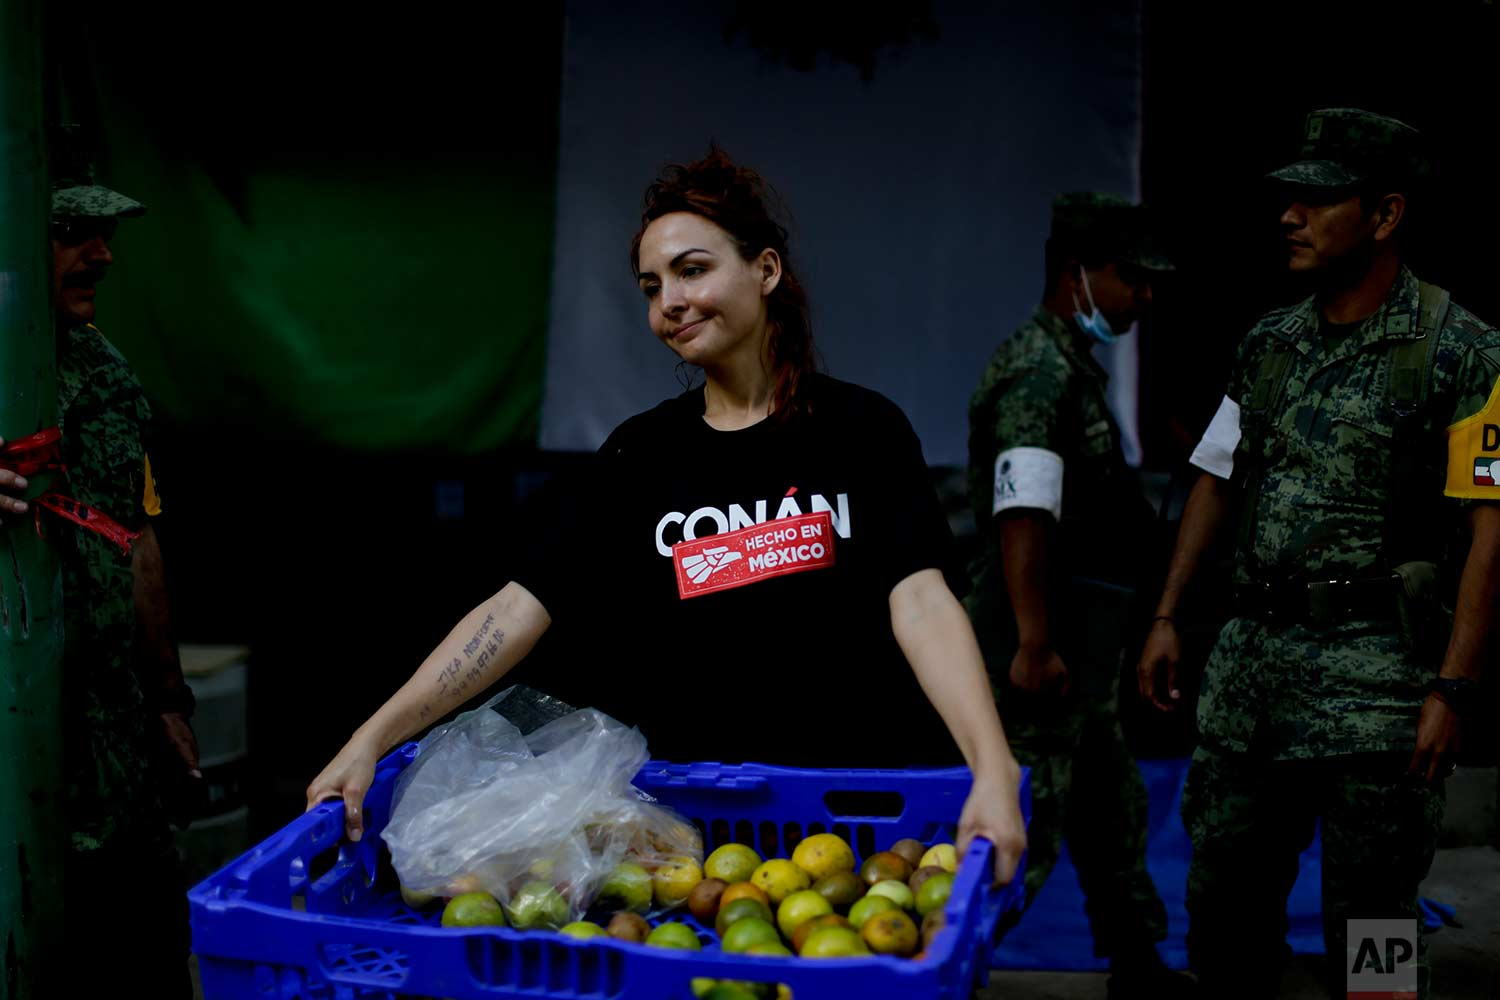 """Ilya Monforte, a 40-year-old makeup artist, carries oranges for search and rescue workers at a building that collapsed from an earthquake,Sept. 22, 2017 photo,in Mexico City. Monforte, a volunteer in charge of feeding the search and rescue team and military police at the sight following the Sept. 19 magnitude 7.1 earthquake, said: """"For the last three days we did not need money, it was like living in socialism. The collective goal during these days was to help others, to take care of them, love them. On each corner you can find people giving."""" (AP Photo/Natacha Pisarenko)"""